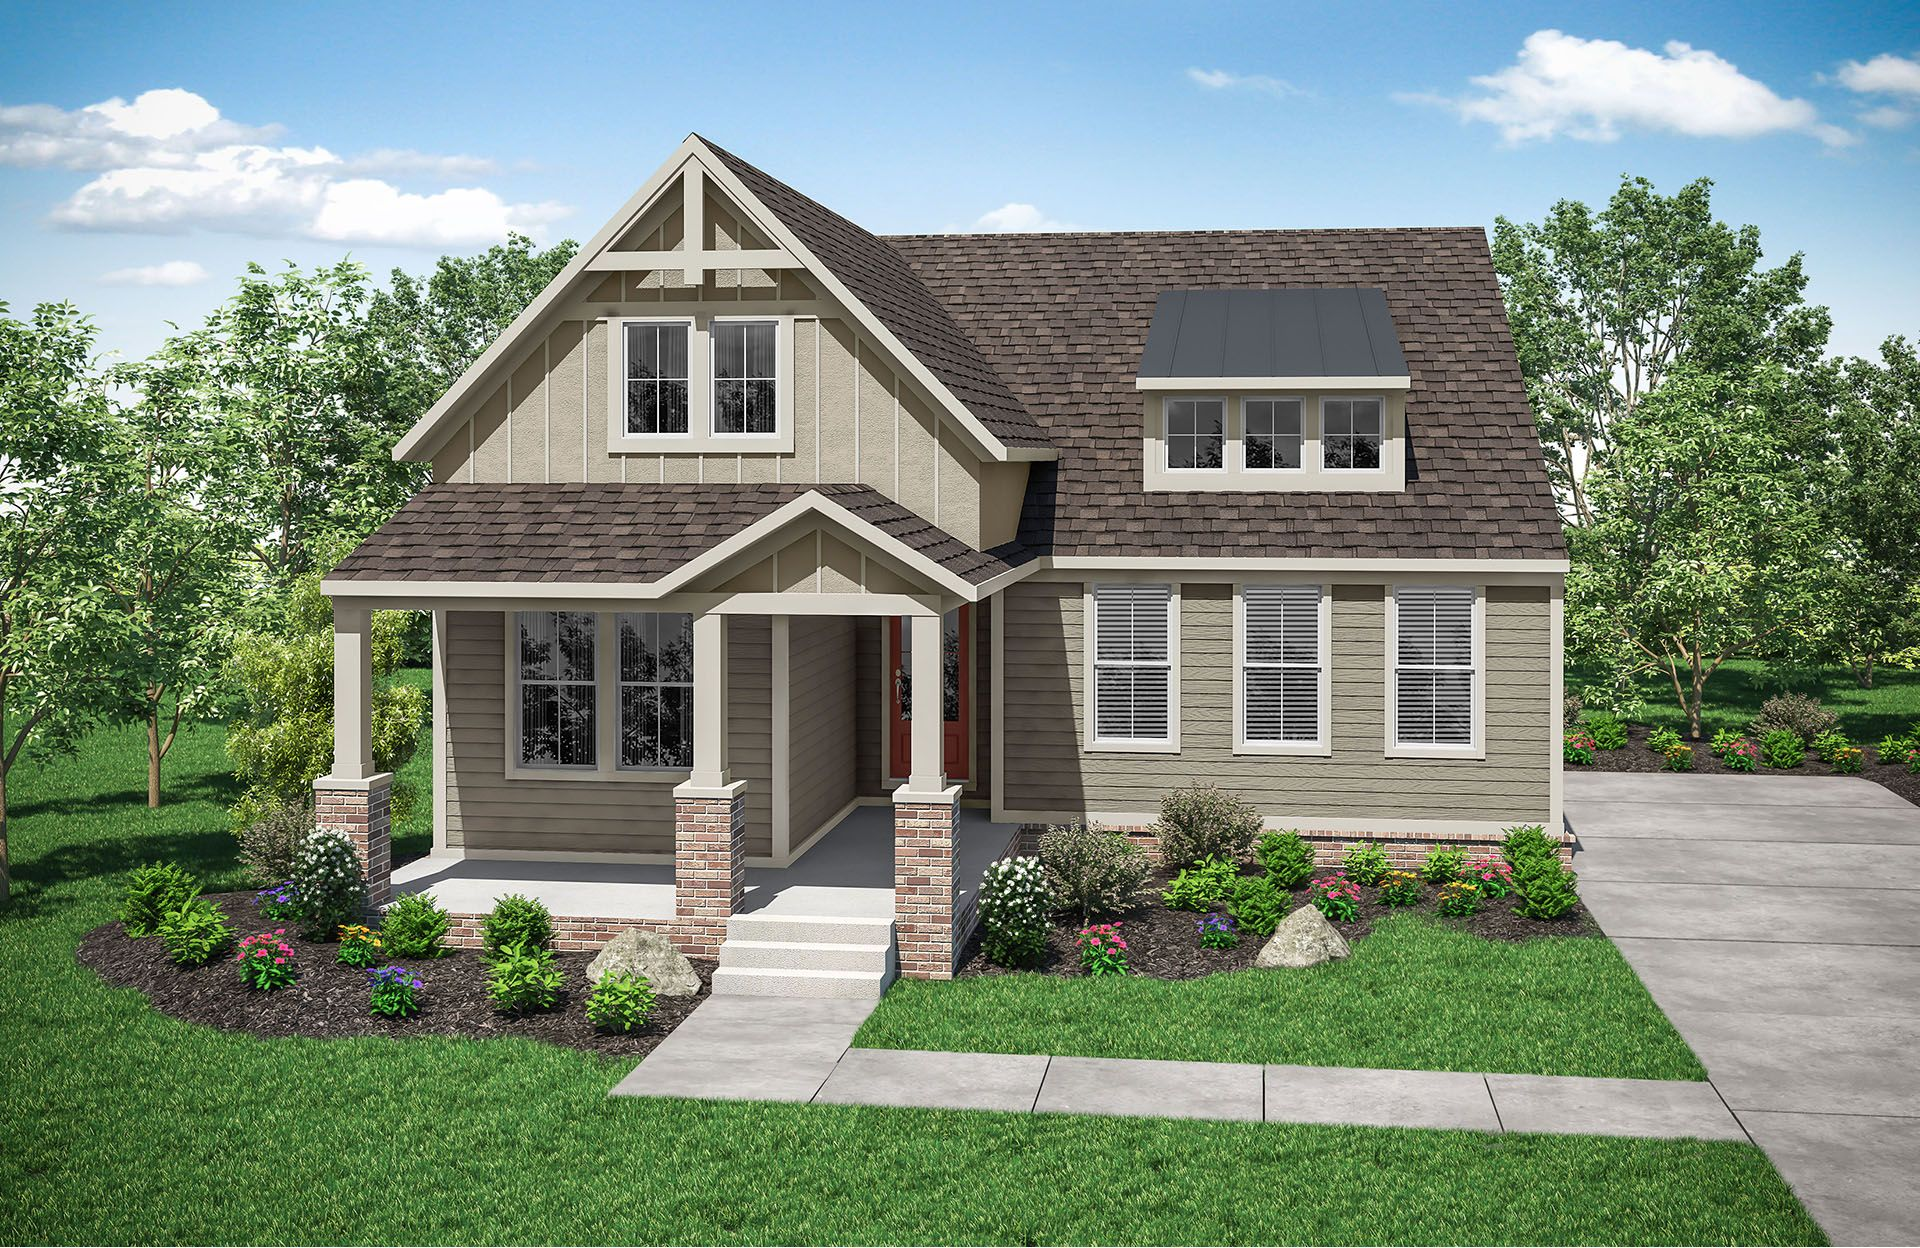 New Homes in Mount Juliet TN 1 528 New Homes